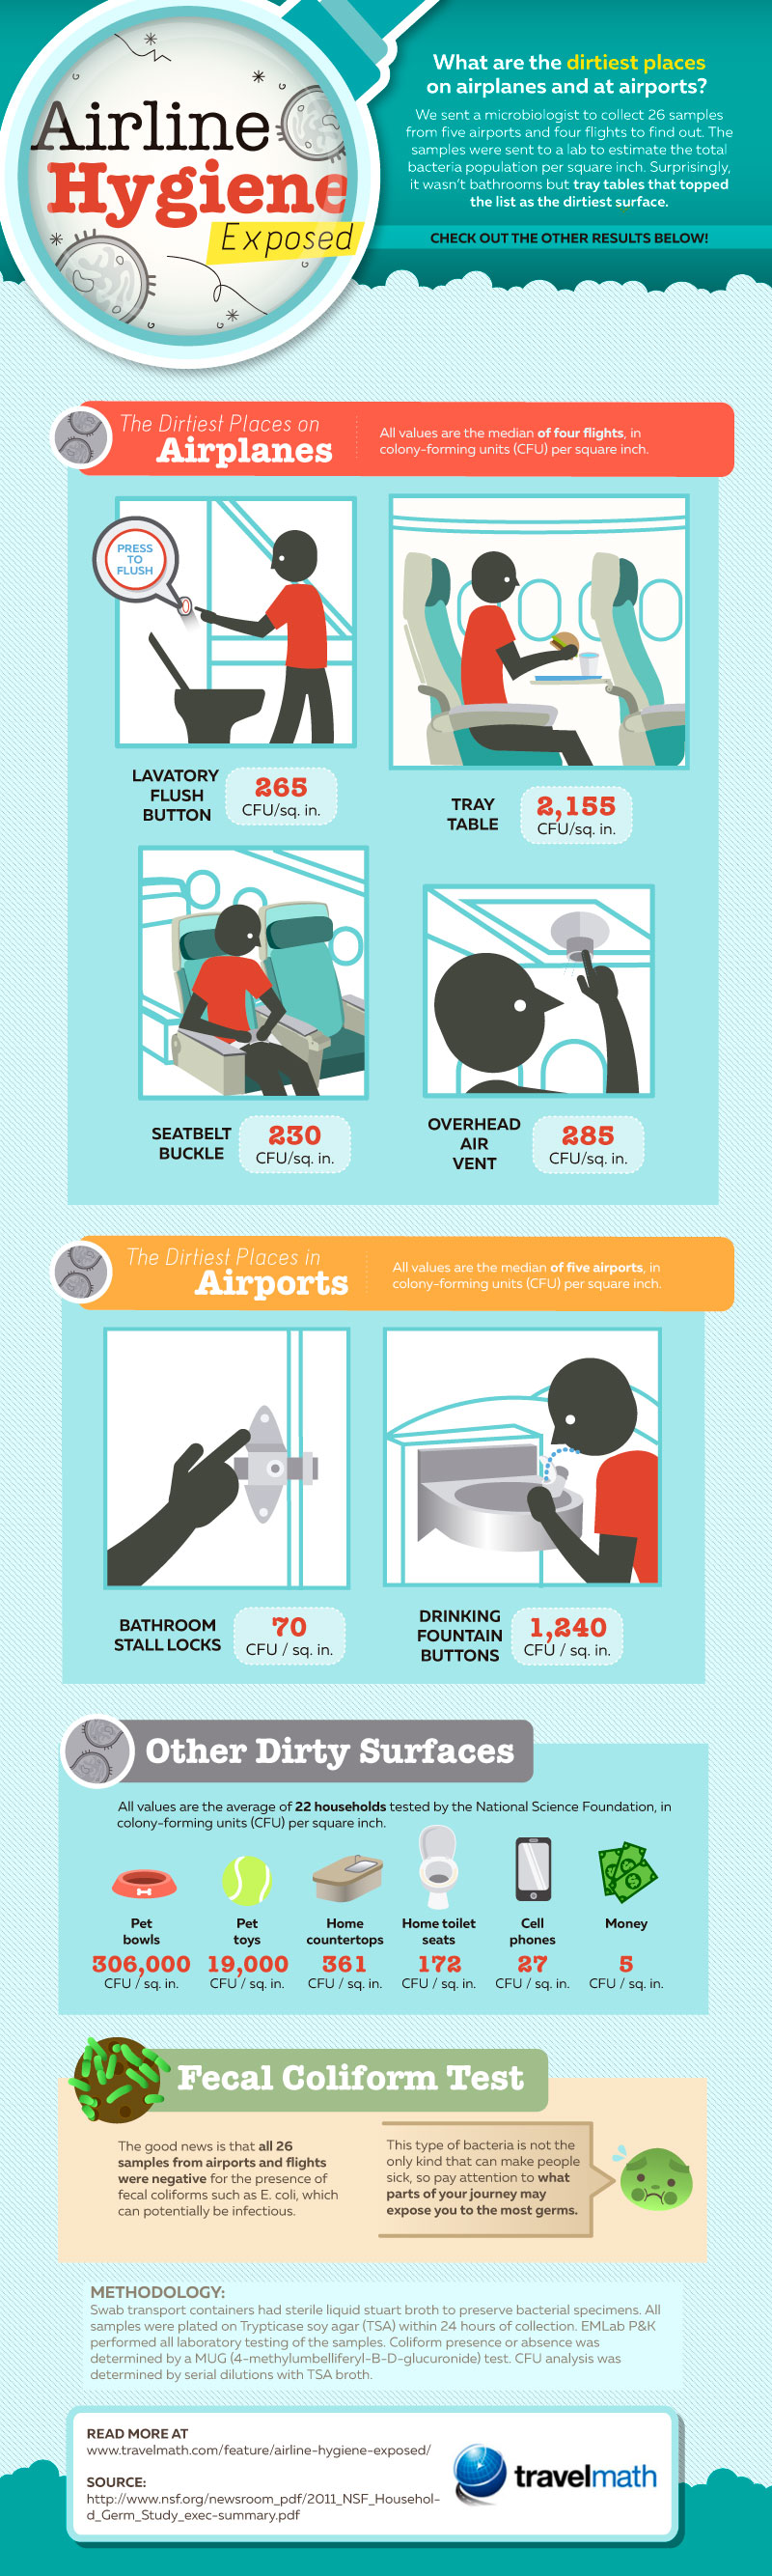 Airline Hygiene Exposed Infographic